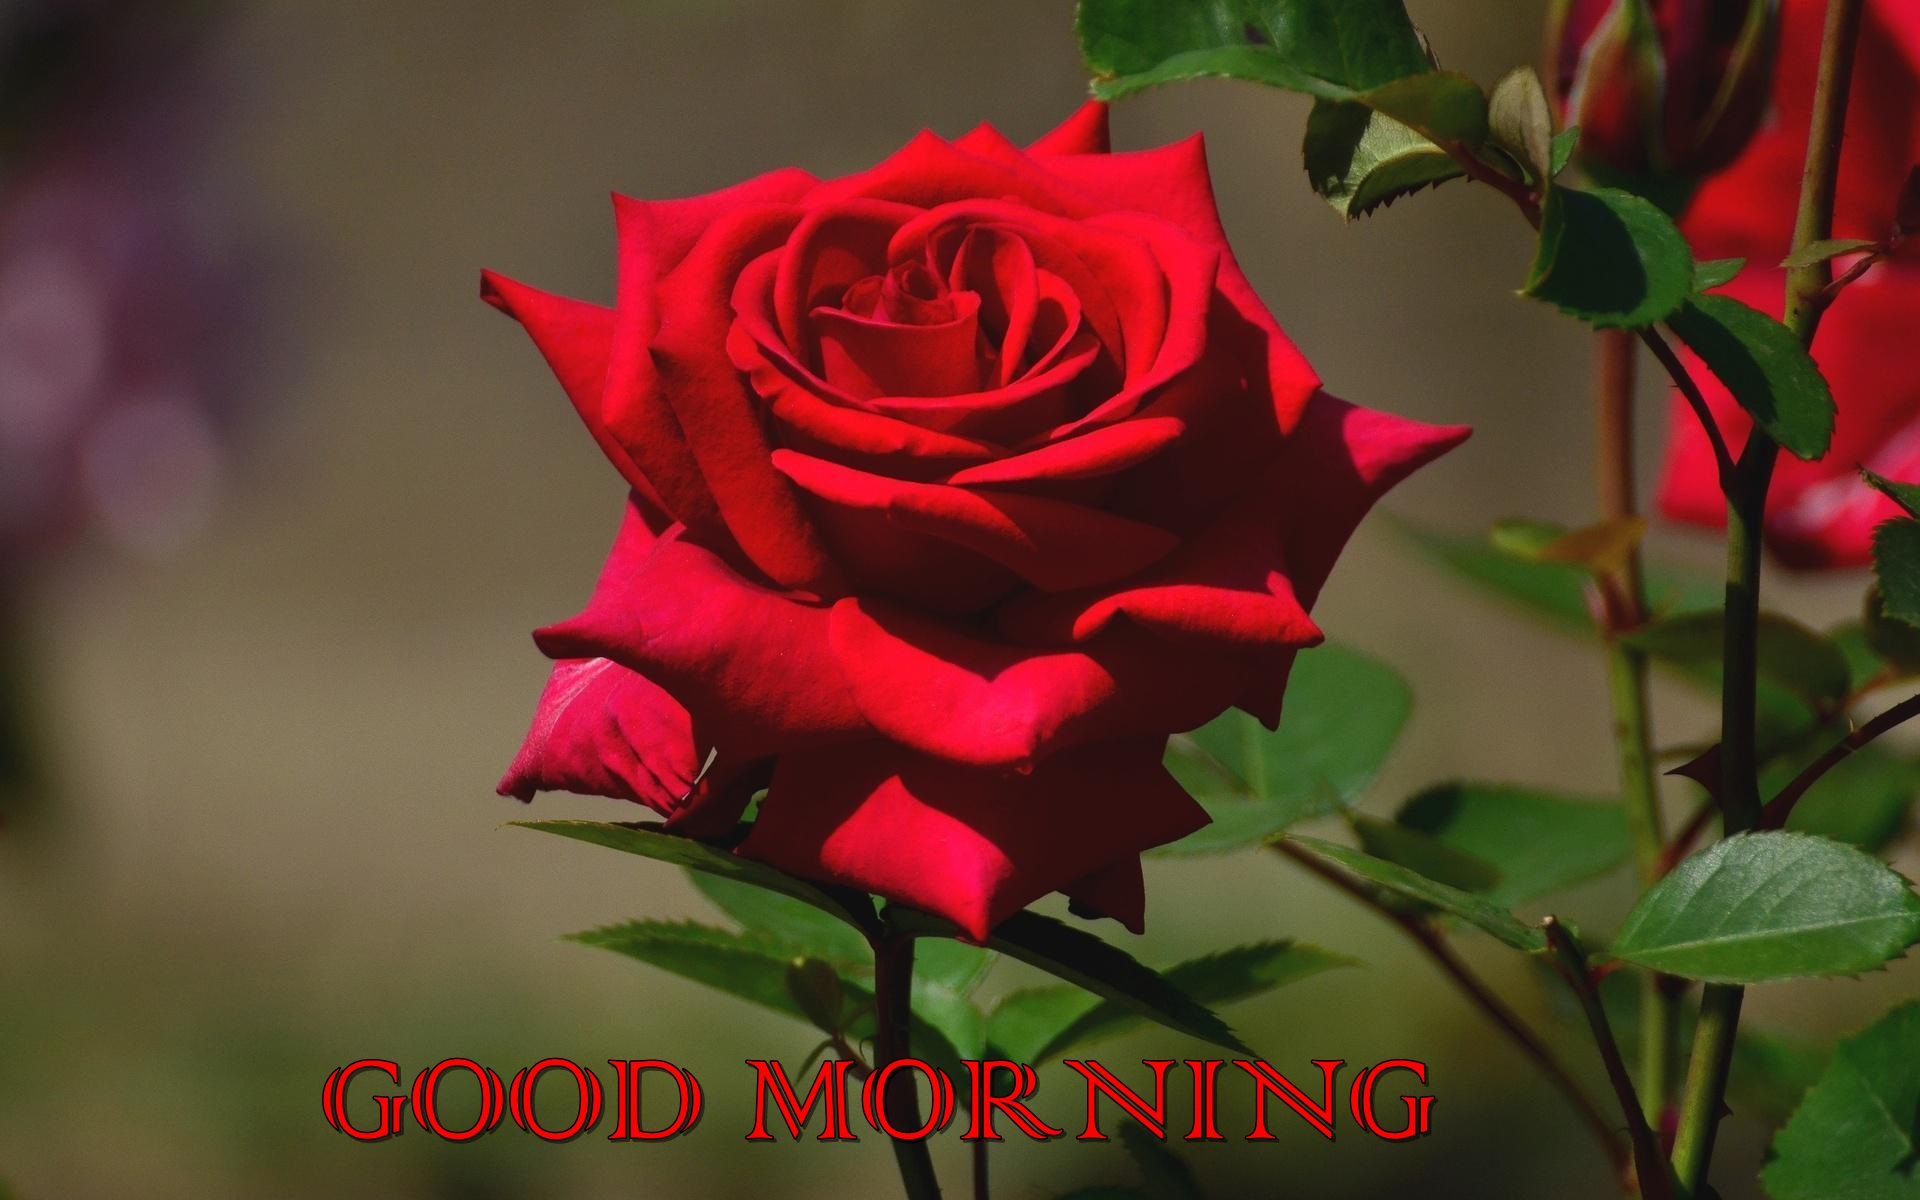 Good Morning Red Rose Quotes Hd Wallpapers - Beautiful Rose Full Hd , HD Wallpaper & Backgrounds